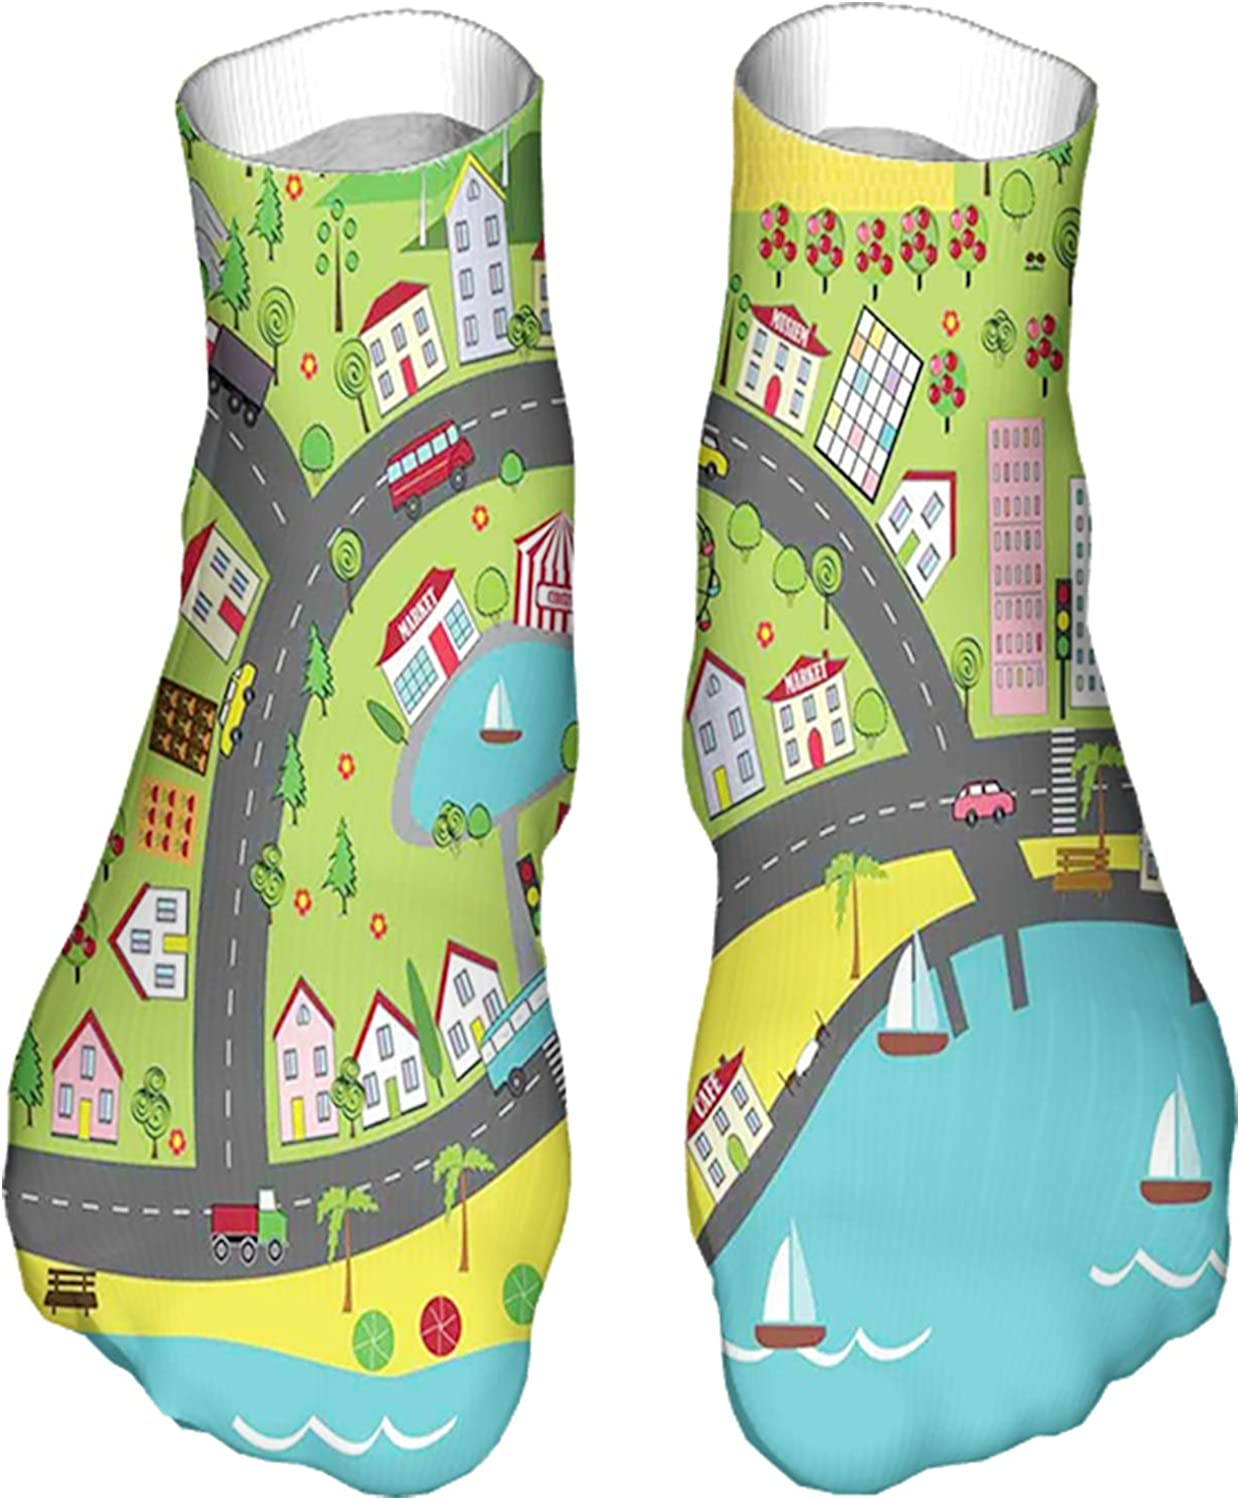 Women's Colorful Patterned Unisex Low Cut/No Show Socks,Landscape of Urban and Suburbs with Colorful City Elements